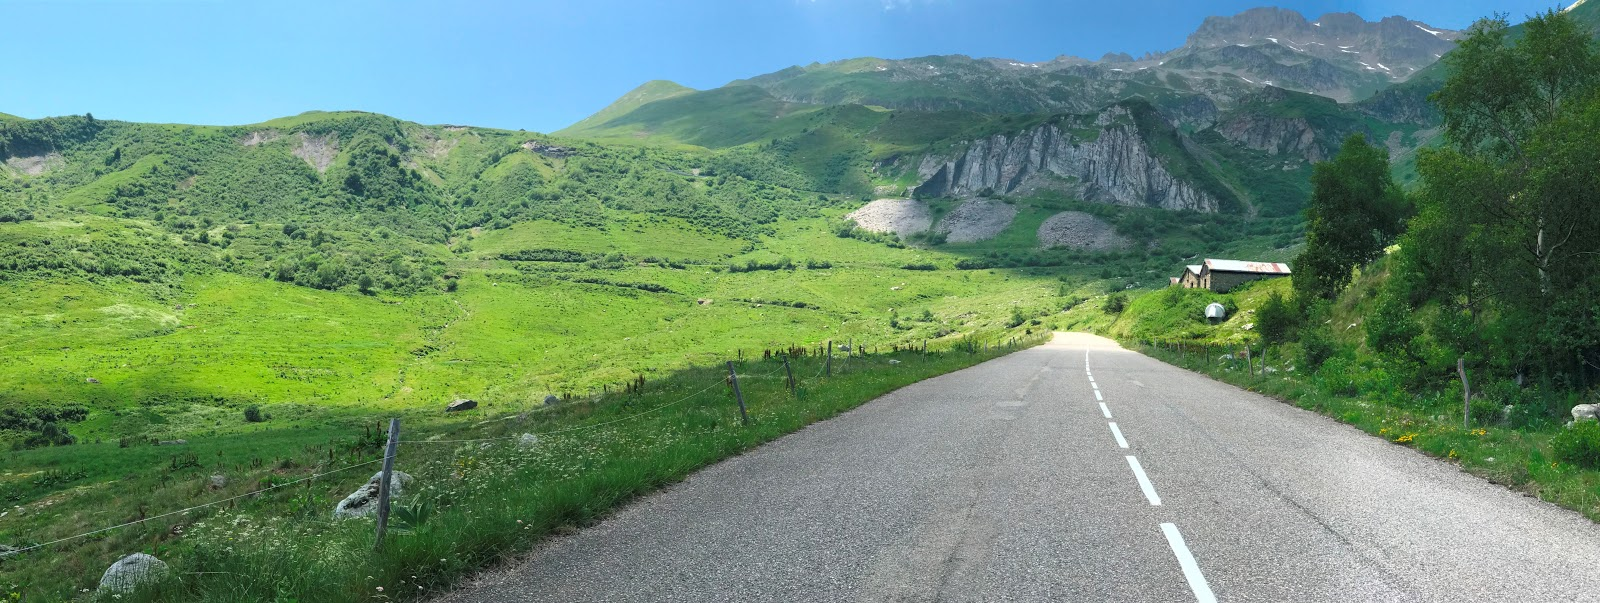 Cycling Col du Madeleiene - roadway and green fields with mountains in background